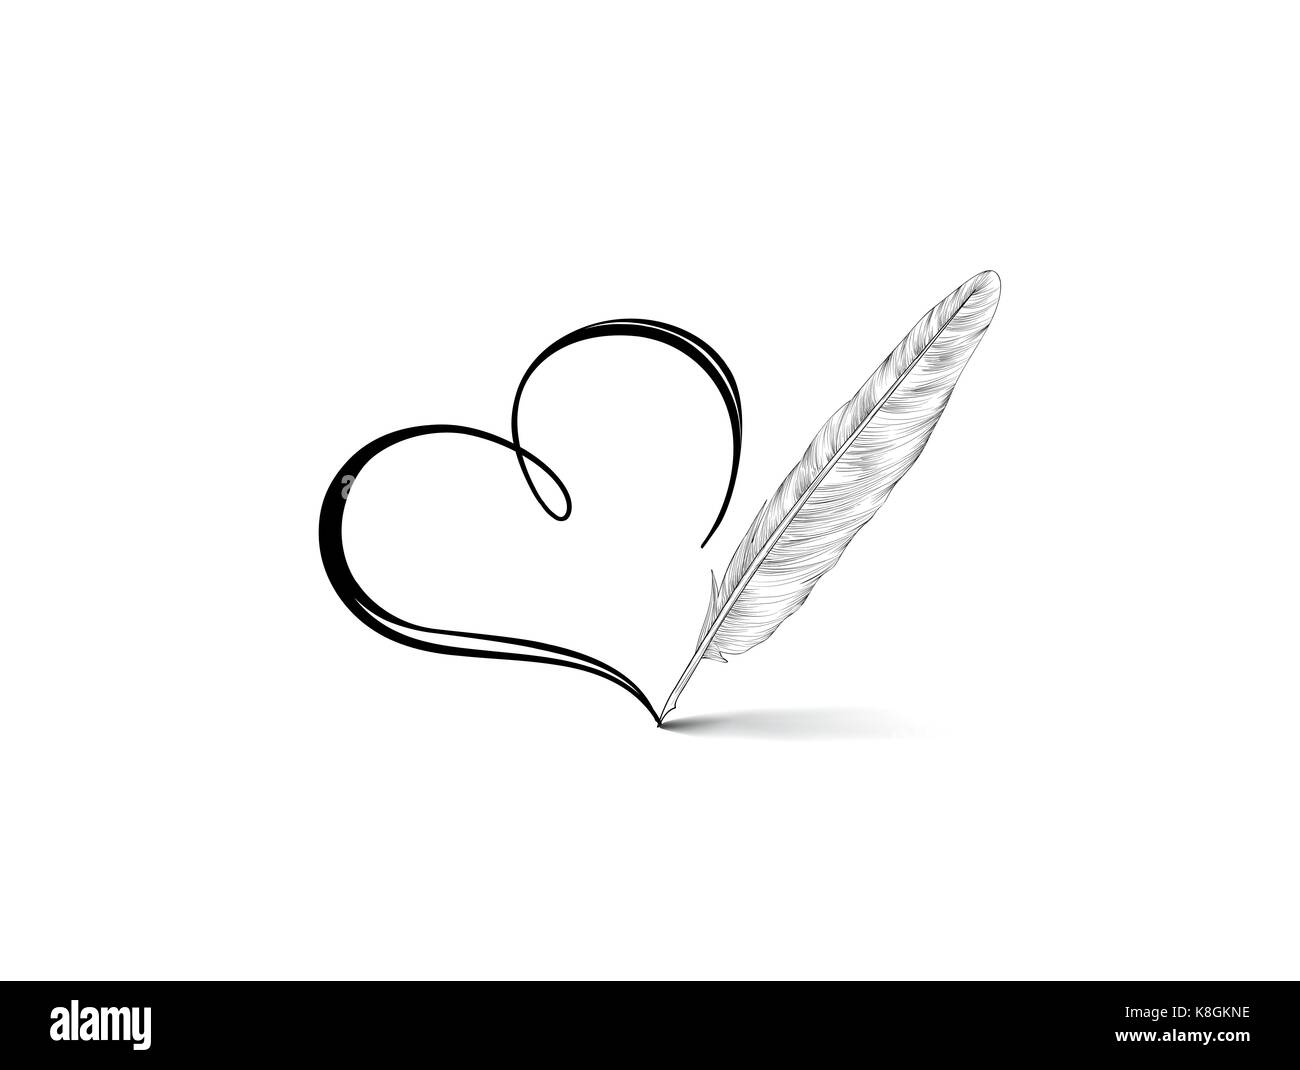 Line Art Feather : Love heart calligraphic hand drawn sign written by retro feather